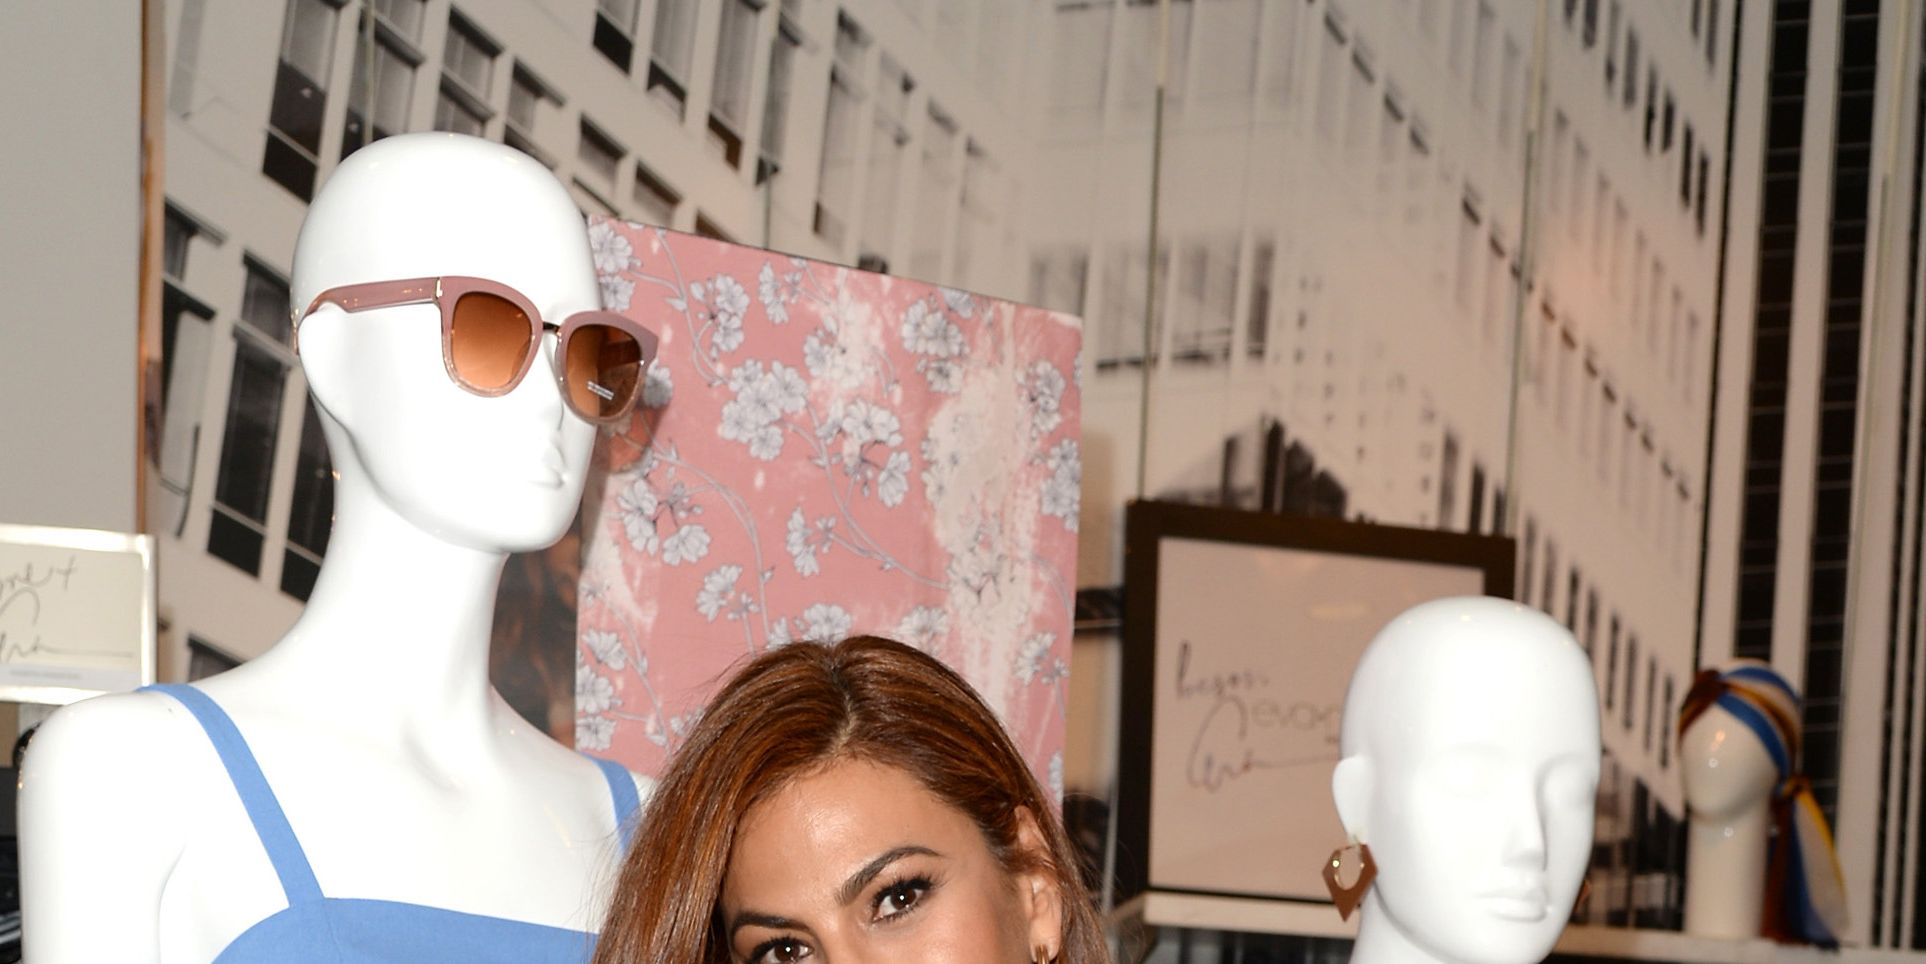 Eva Mendes Admits She 'Struggles' With Food